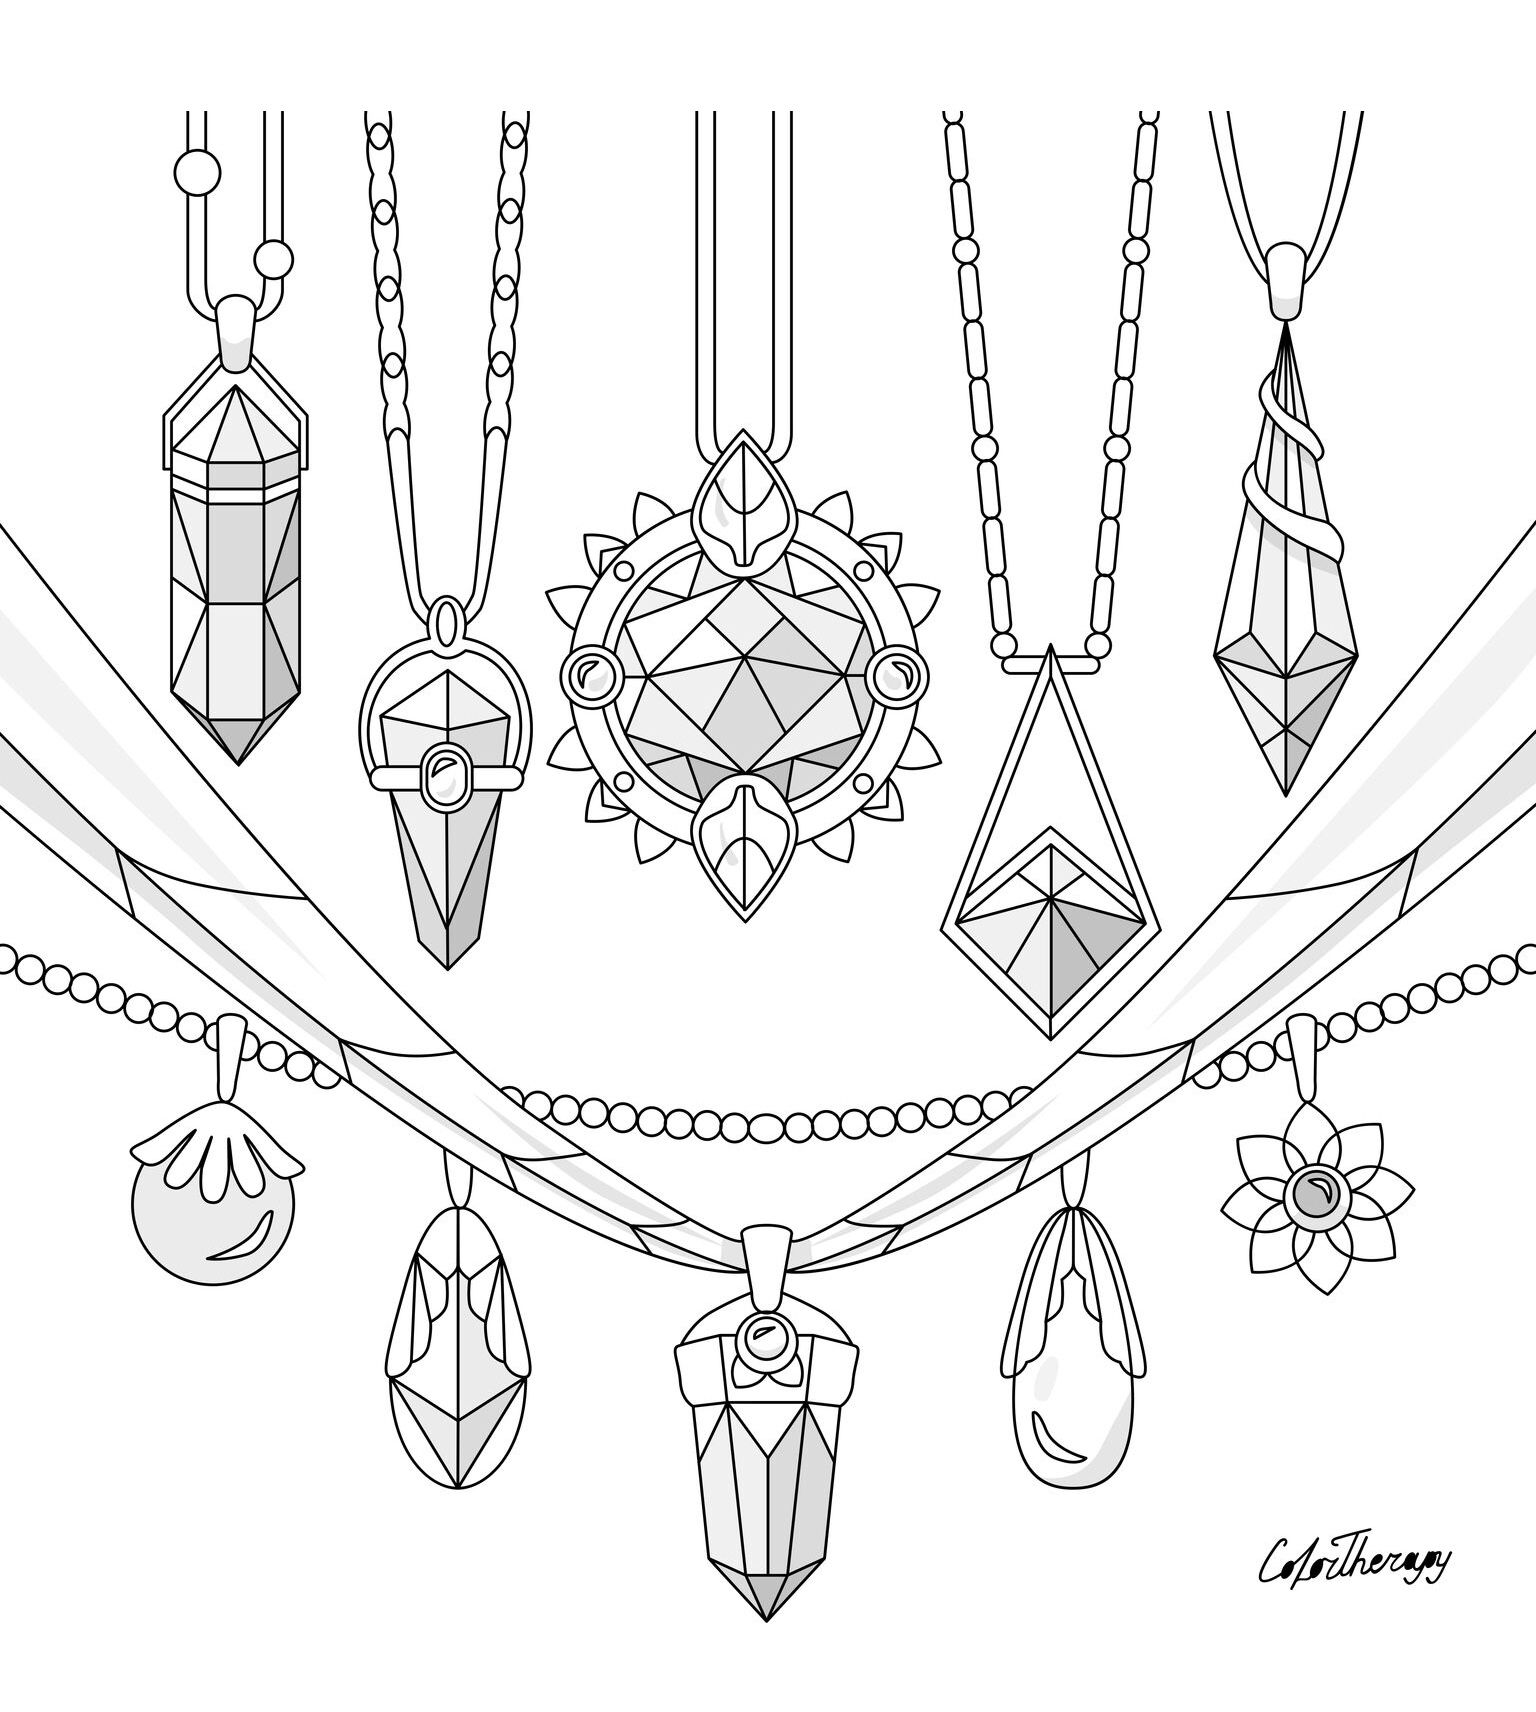 The Sneak Peek For The Next Gift Of The Day Tomorrow Do You Like This One Pendants Crystals D Coloring Pages Cute Coloring Pages Color Therapy App